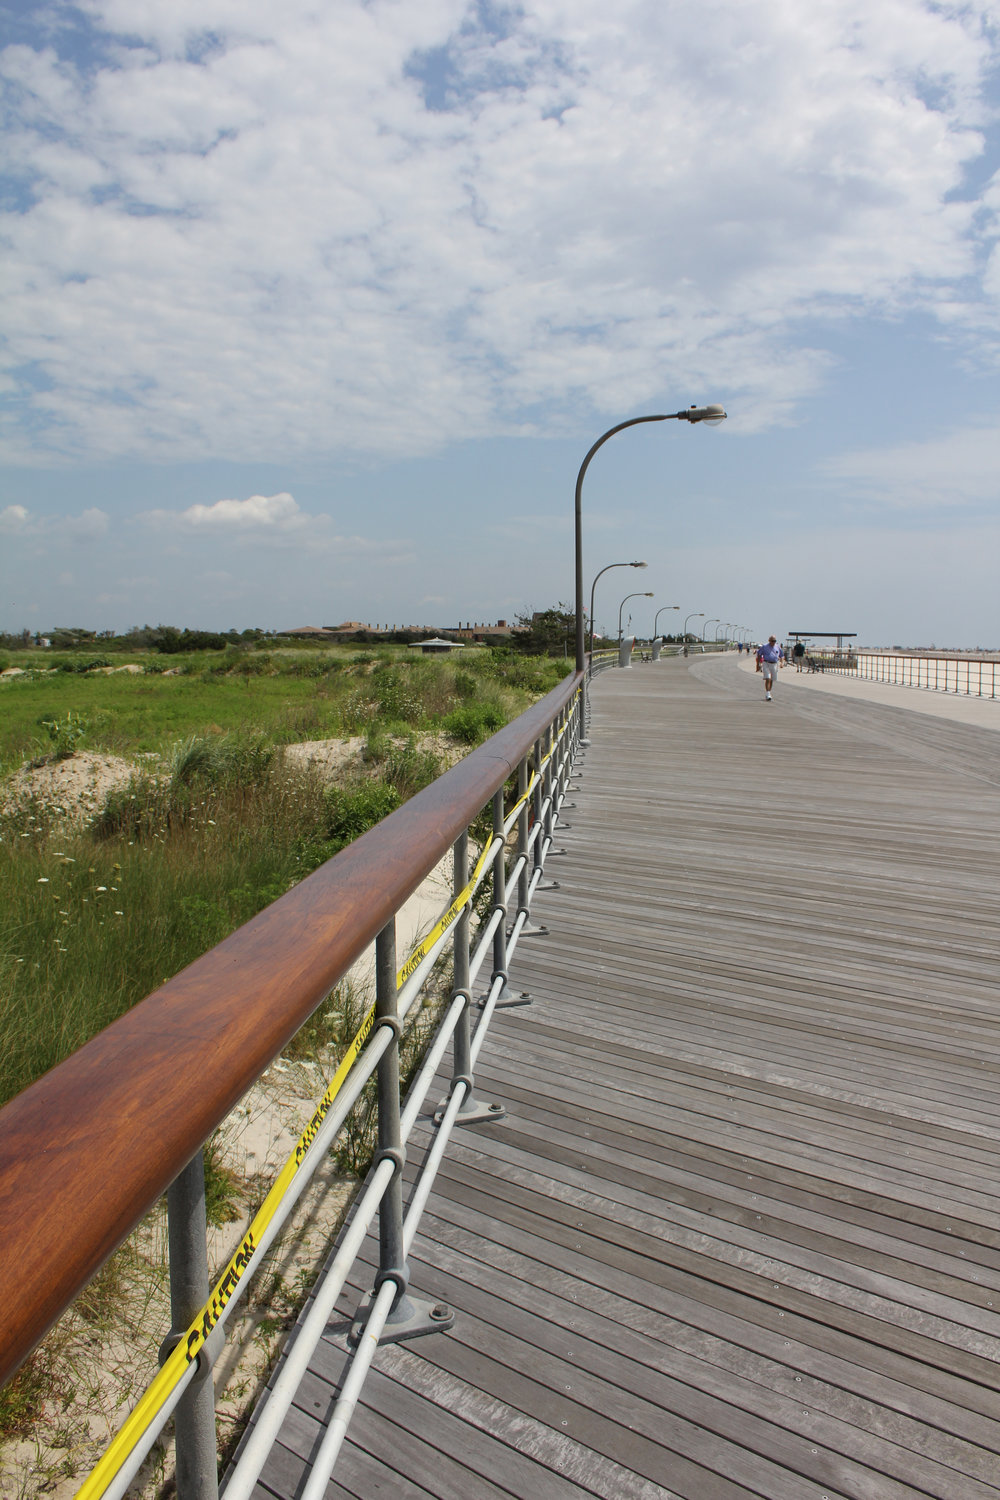 THE JOnes beach shared-use bike path has already given locals and tourists the ability to travel to and from the Jones Beach Boardwalk by bike or foot.